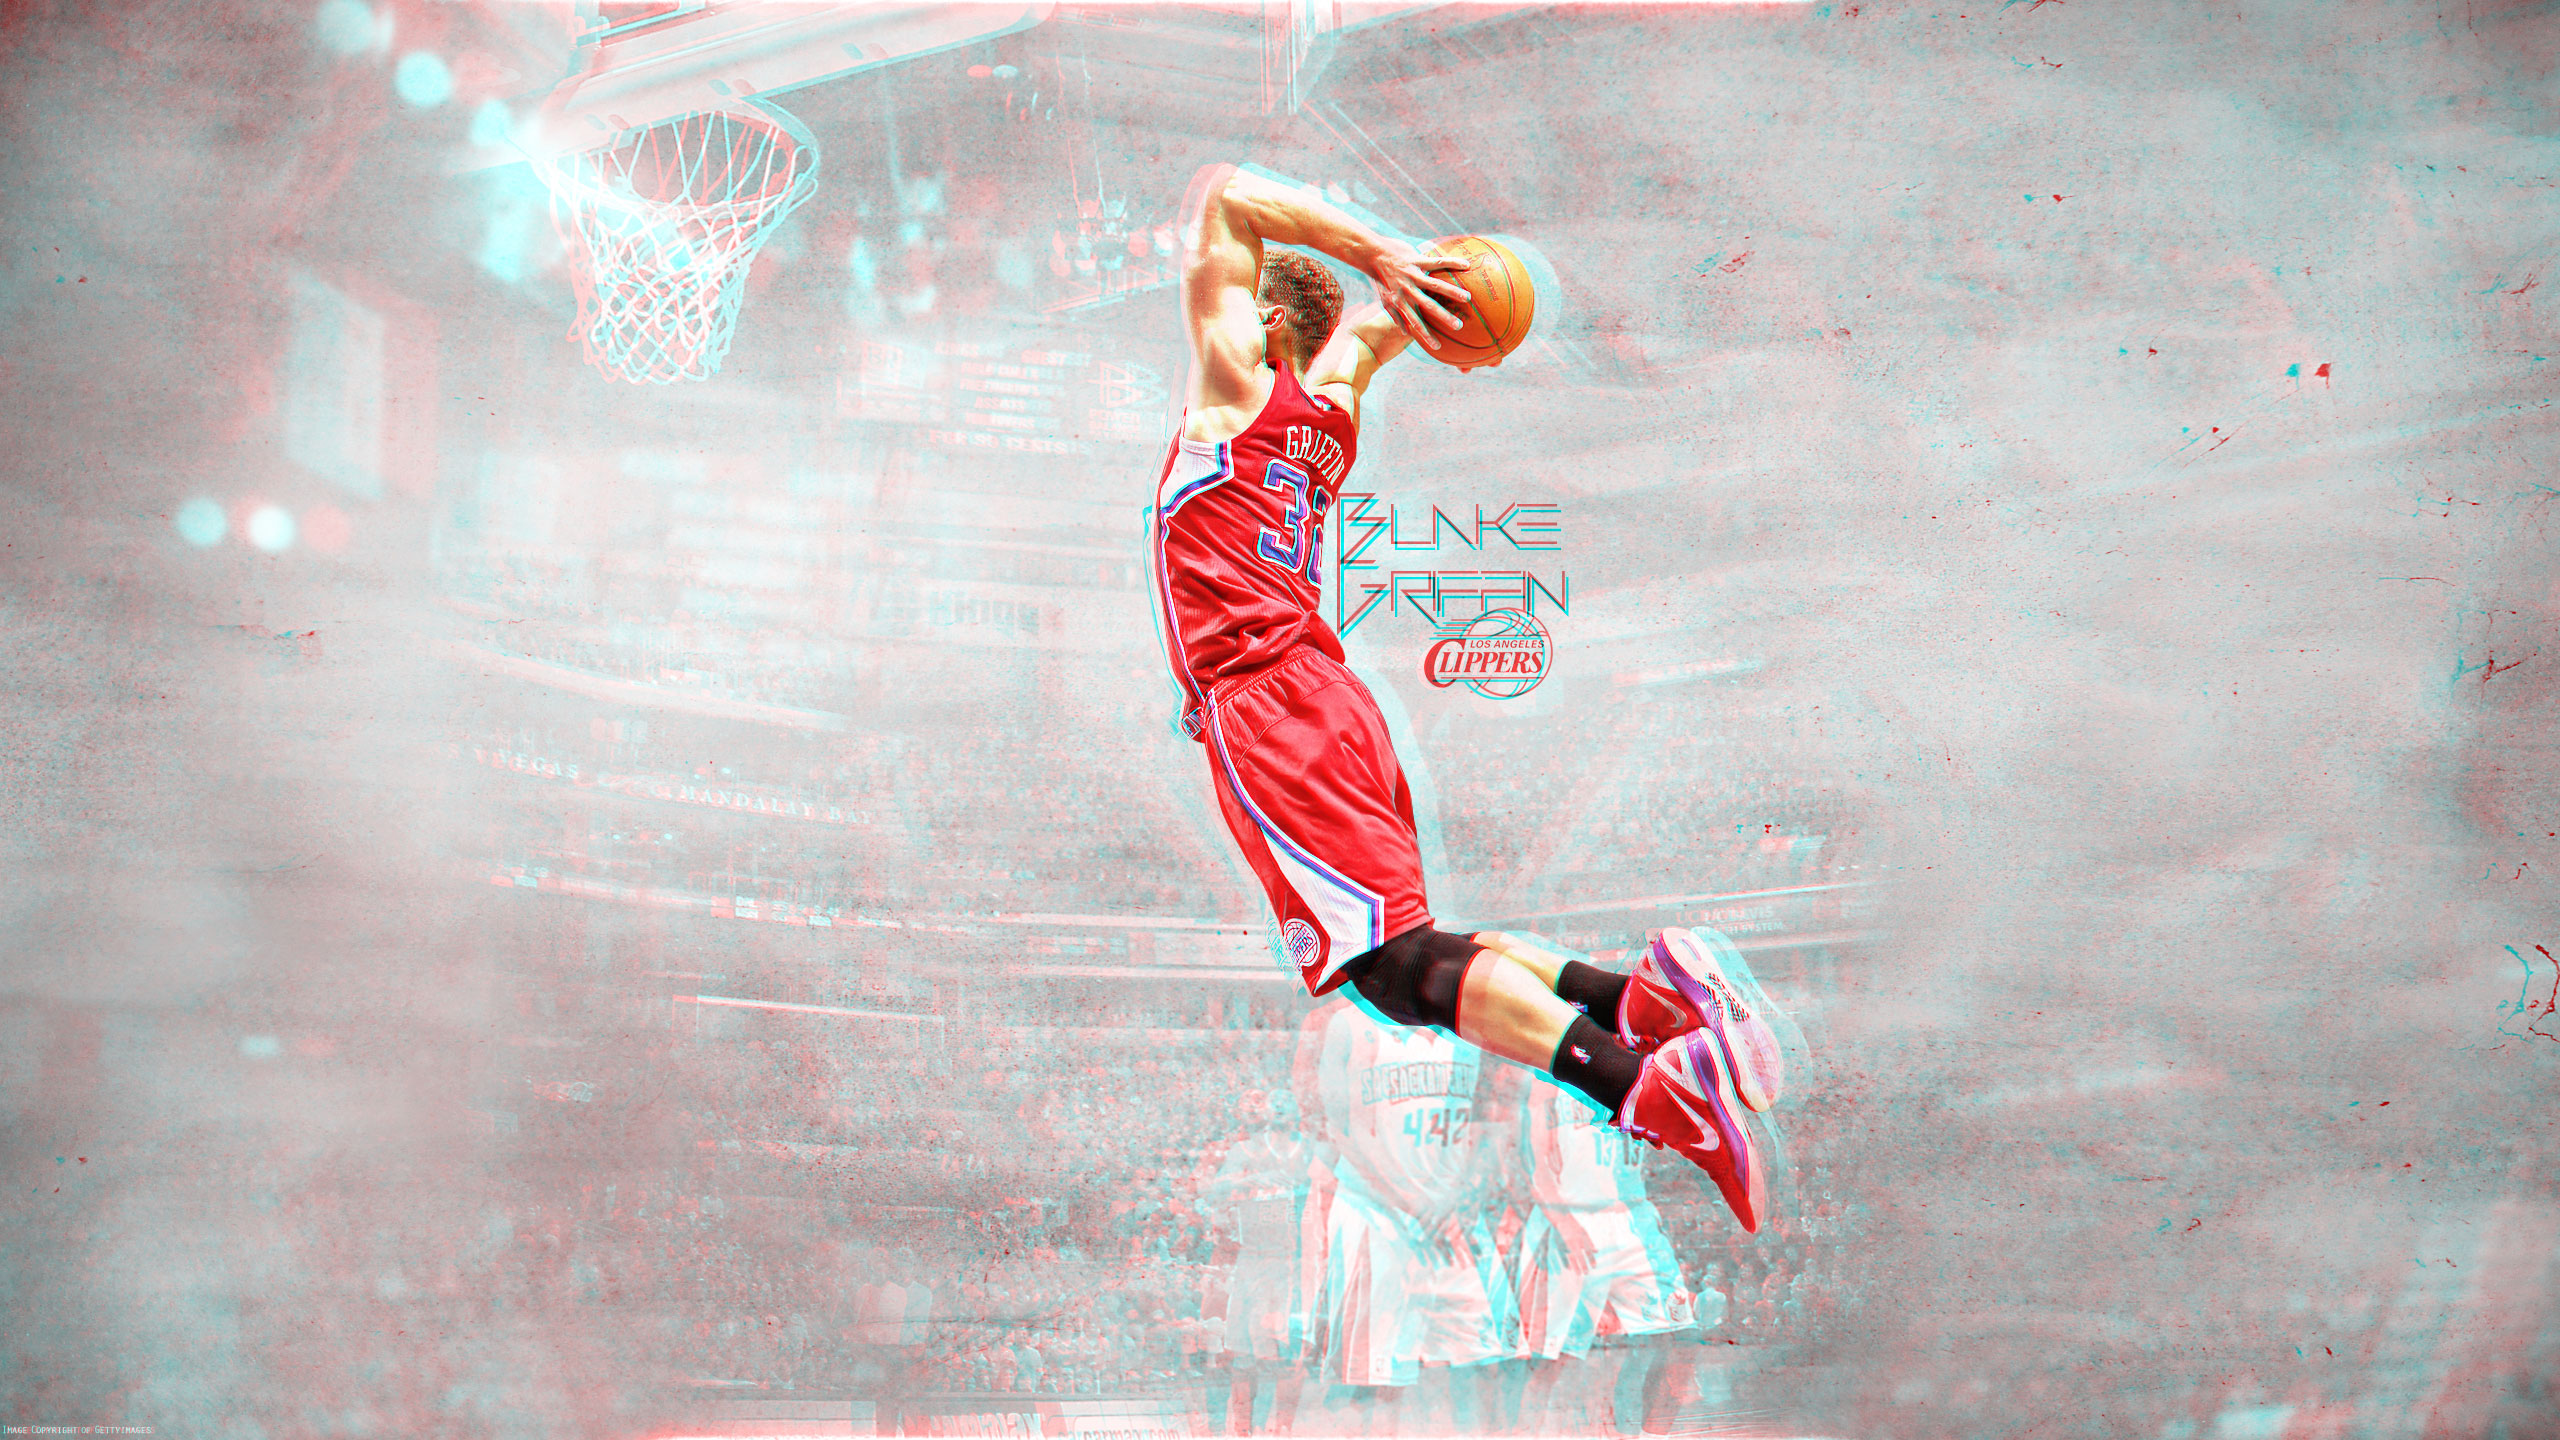 Blake griffin wallpapers basketball wallpapers at basketwallpapers blake griffin dunk 3d wallpaper voltagebd Image collections